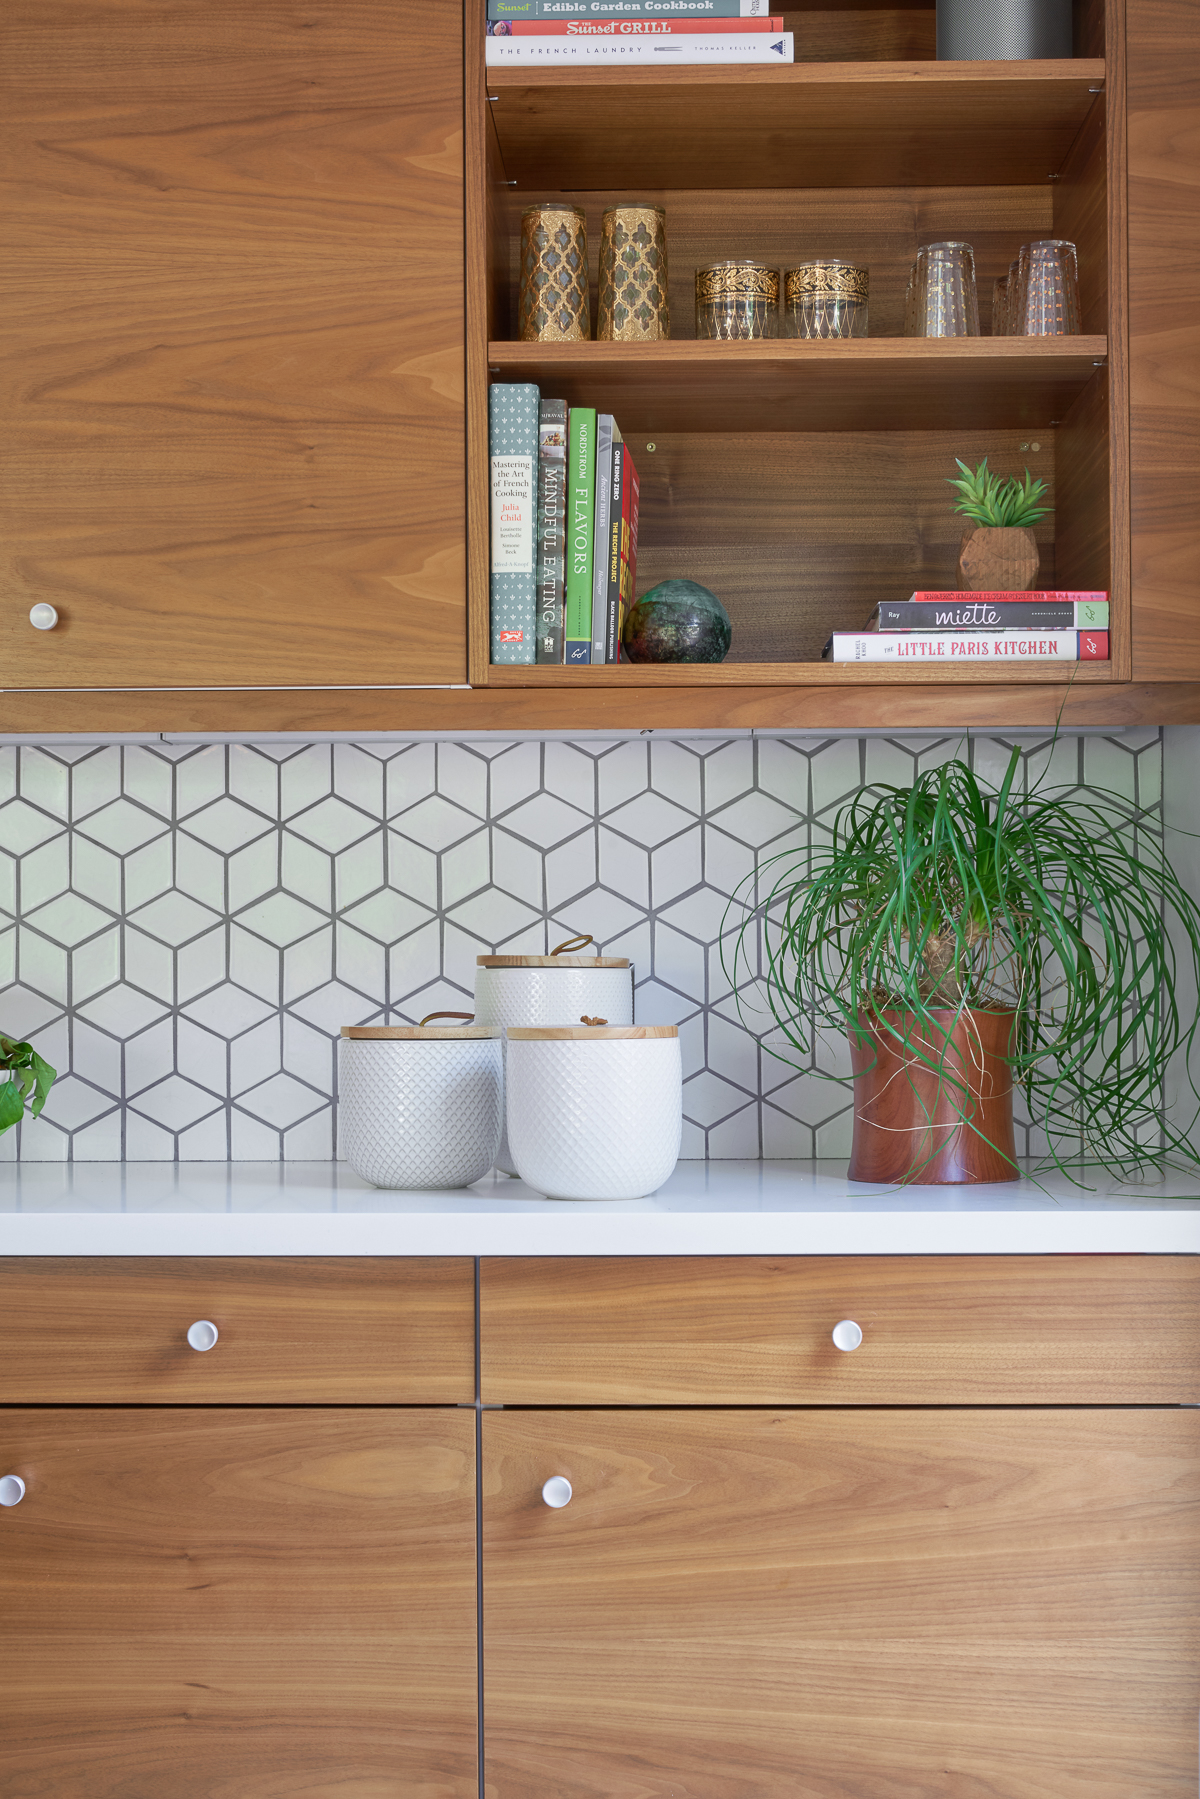 Kitchen Finishes Fireclay Tile Backsplash Semihandmade Cabinet Fronts Quartzstone Counter And Terrazzo Like Floor Ikea Box